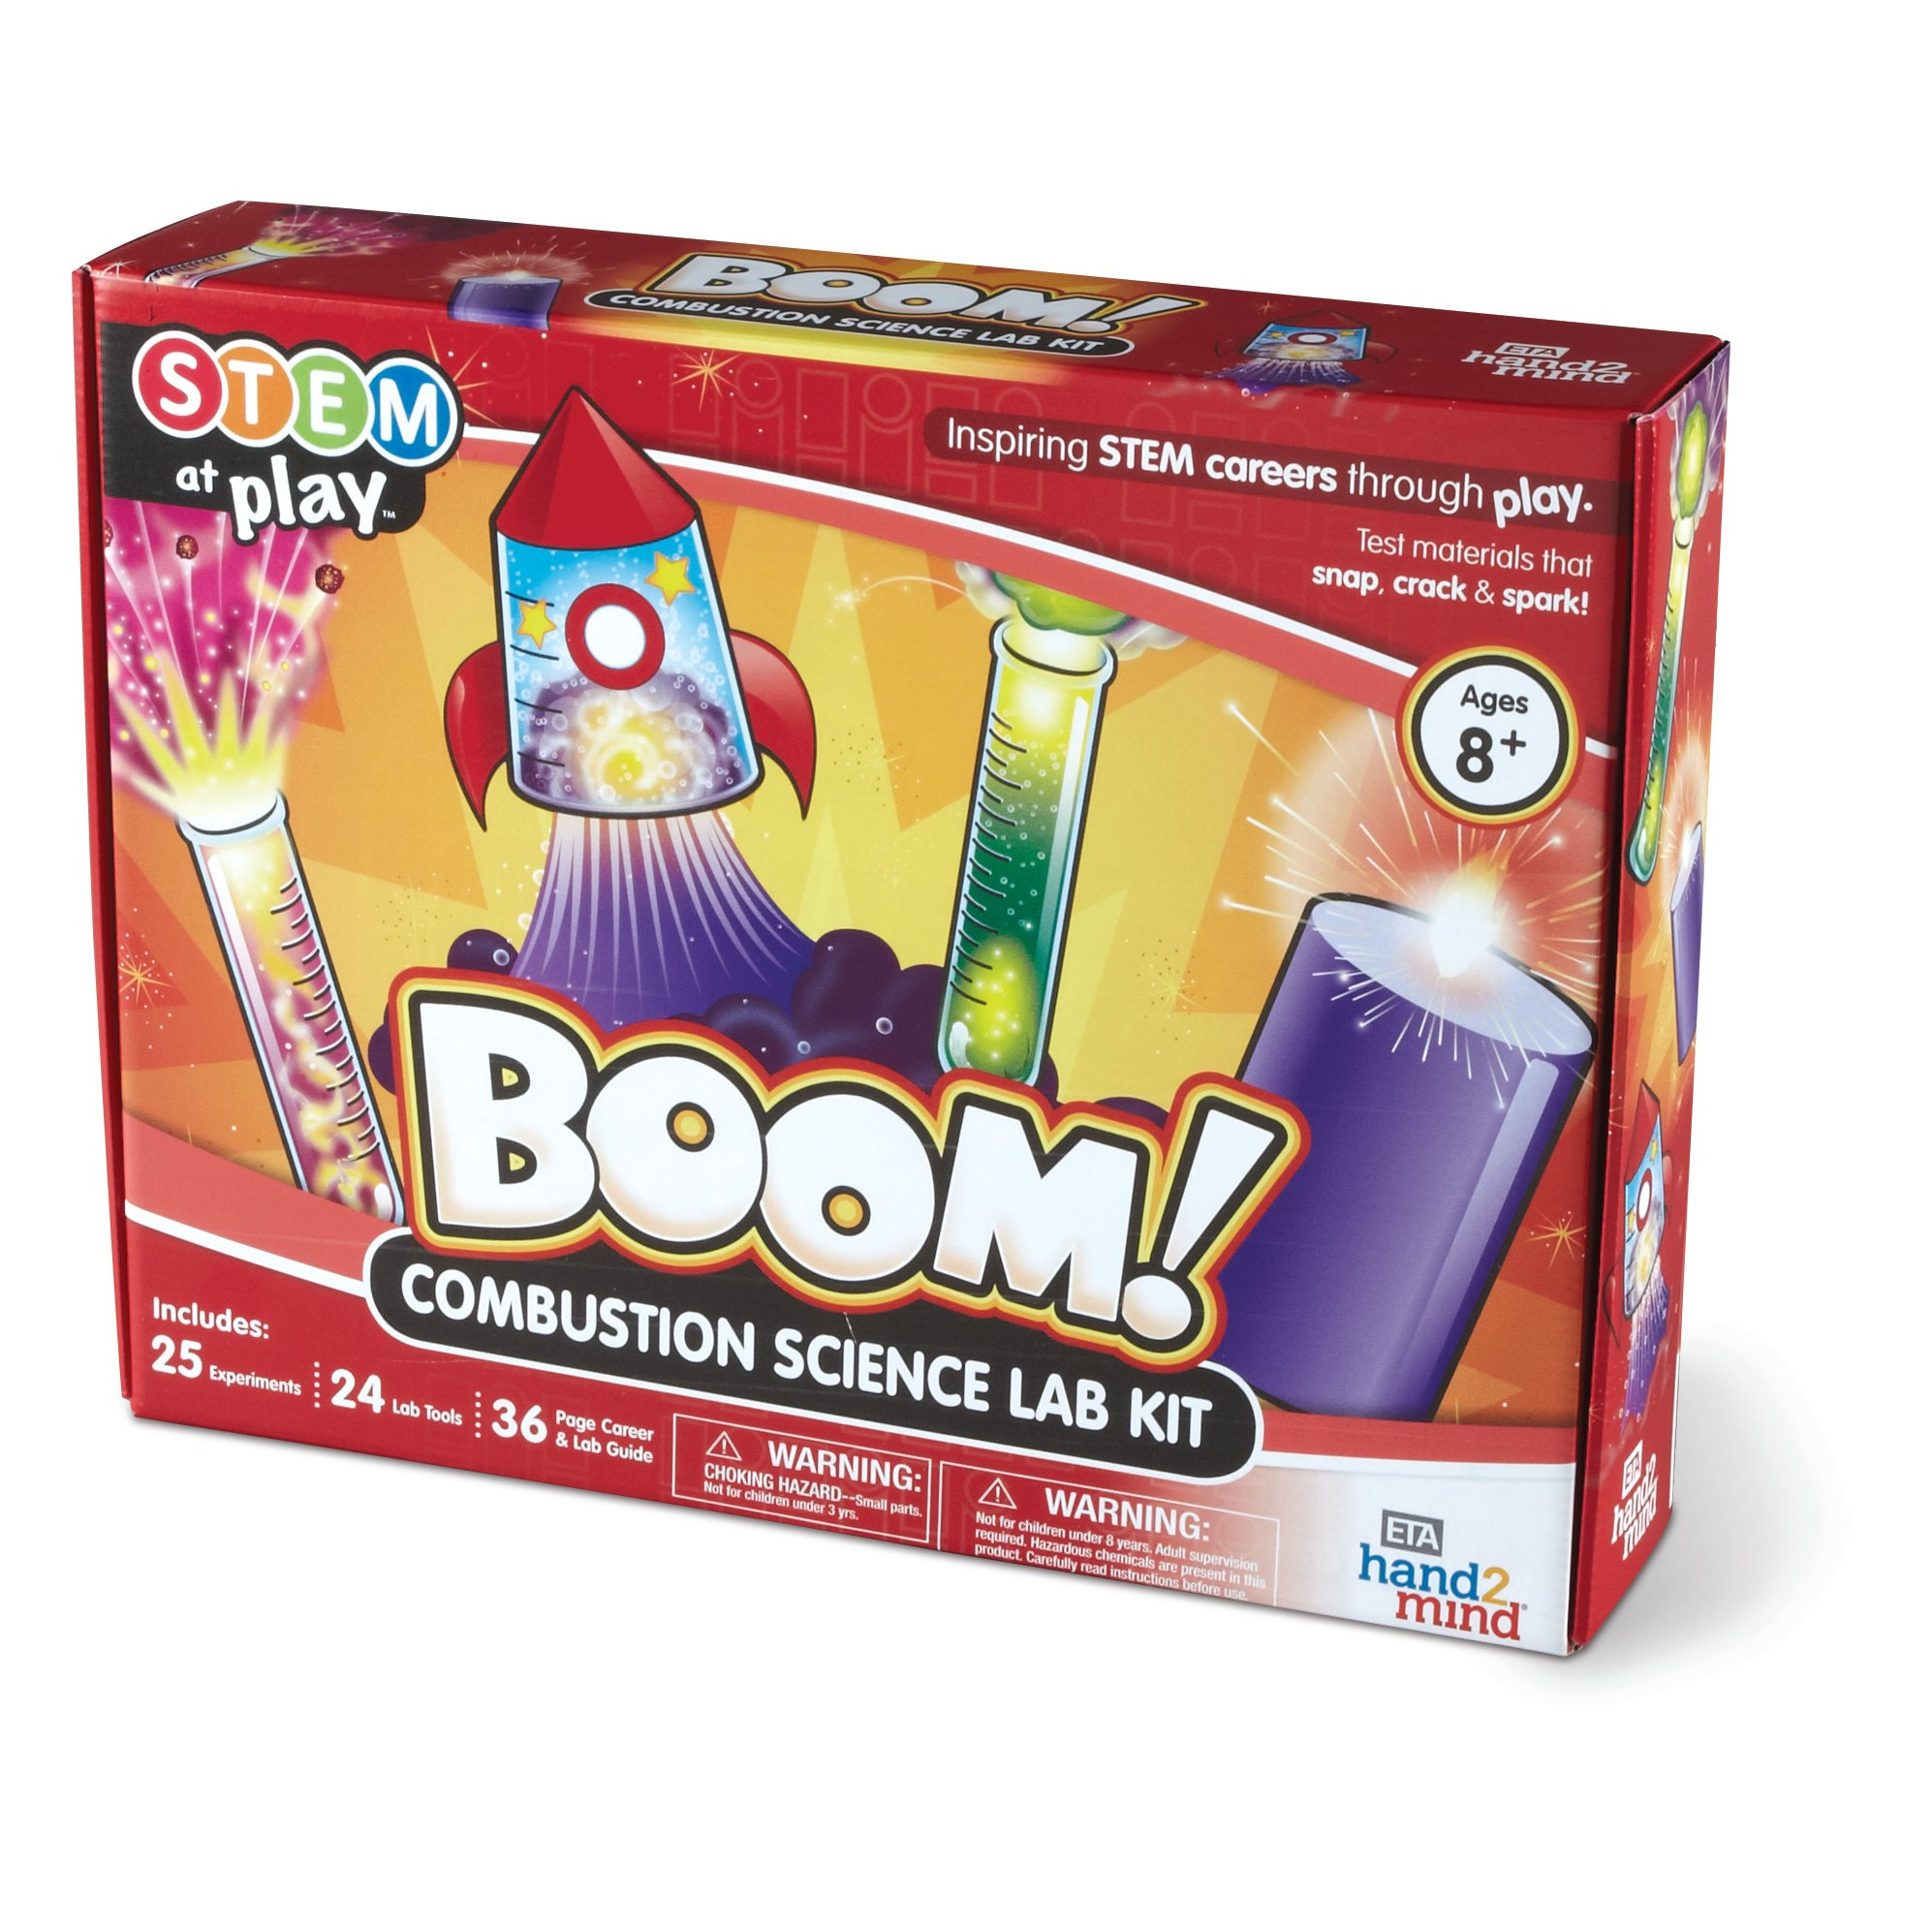 BOOM! Kids Chemistry Science Kit, 25 STEM Experiments & Activities, Make Your Own Rockets, Explosions, & Colorful Liquids | Gift for Children & Teens | Educational Toy  STEM Authenticated